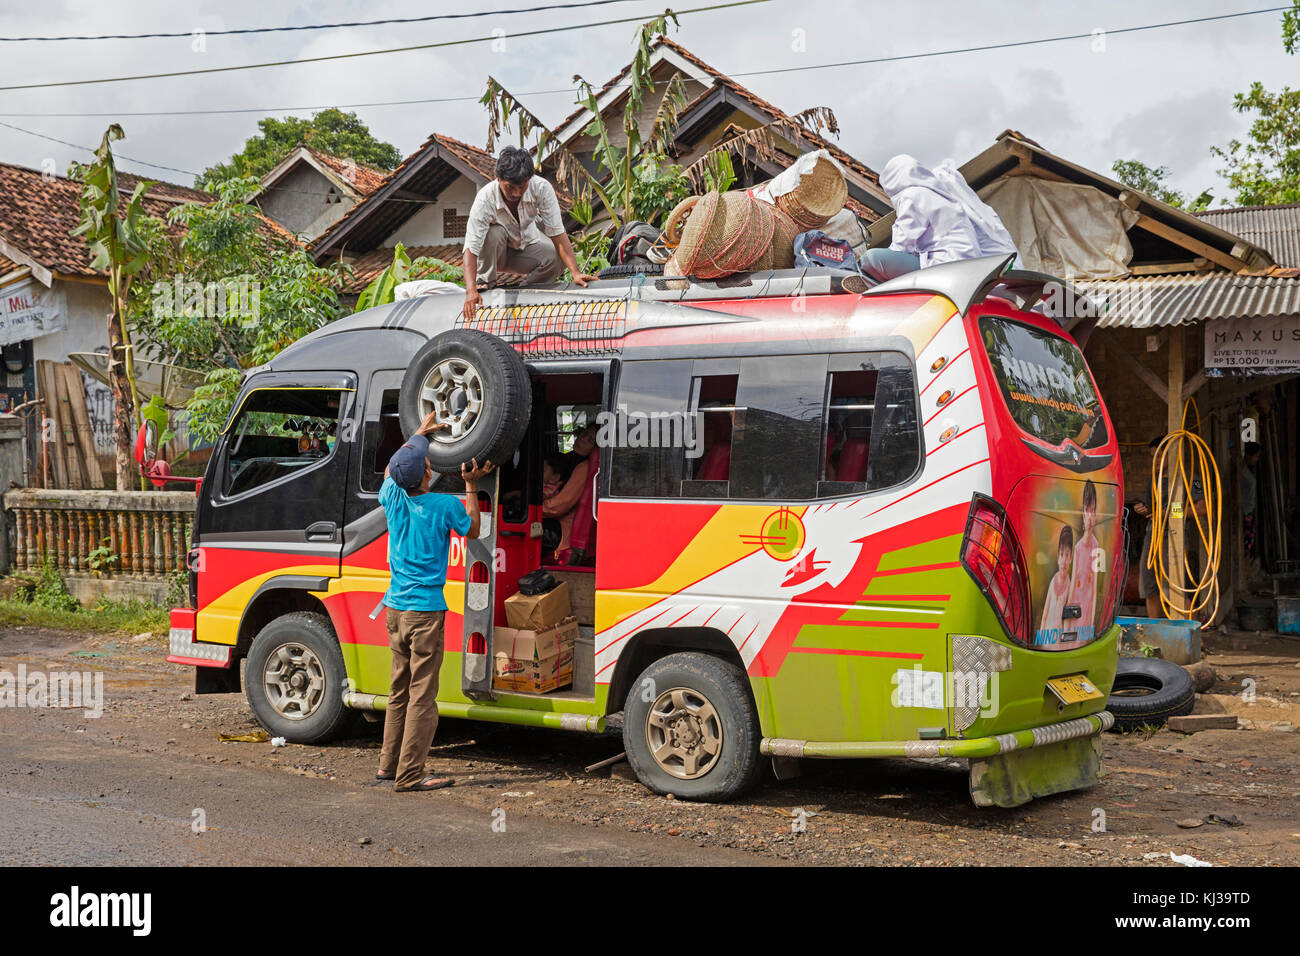 Minibus from Labuan to Tamanyaya being loaded, public transport in Java, Indonesia - Stock Image